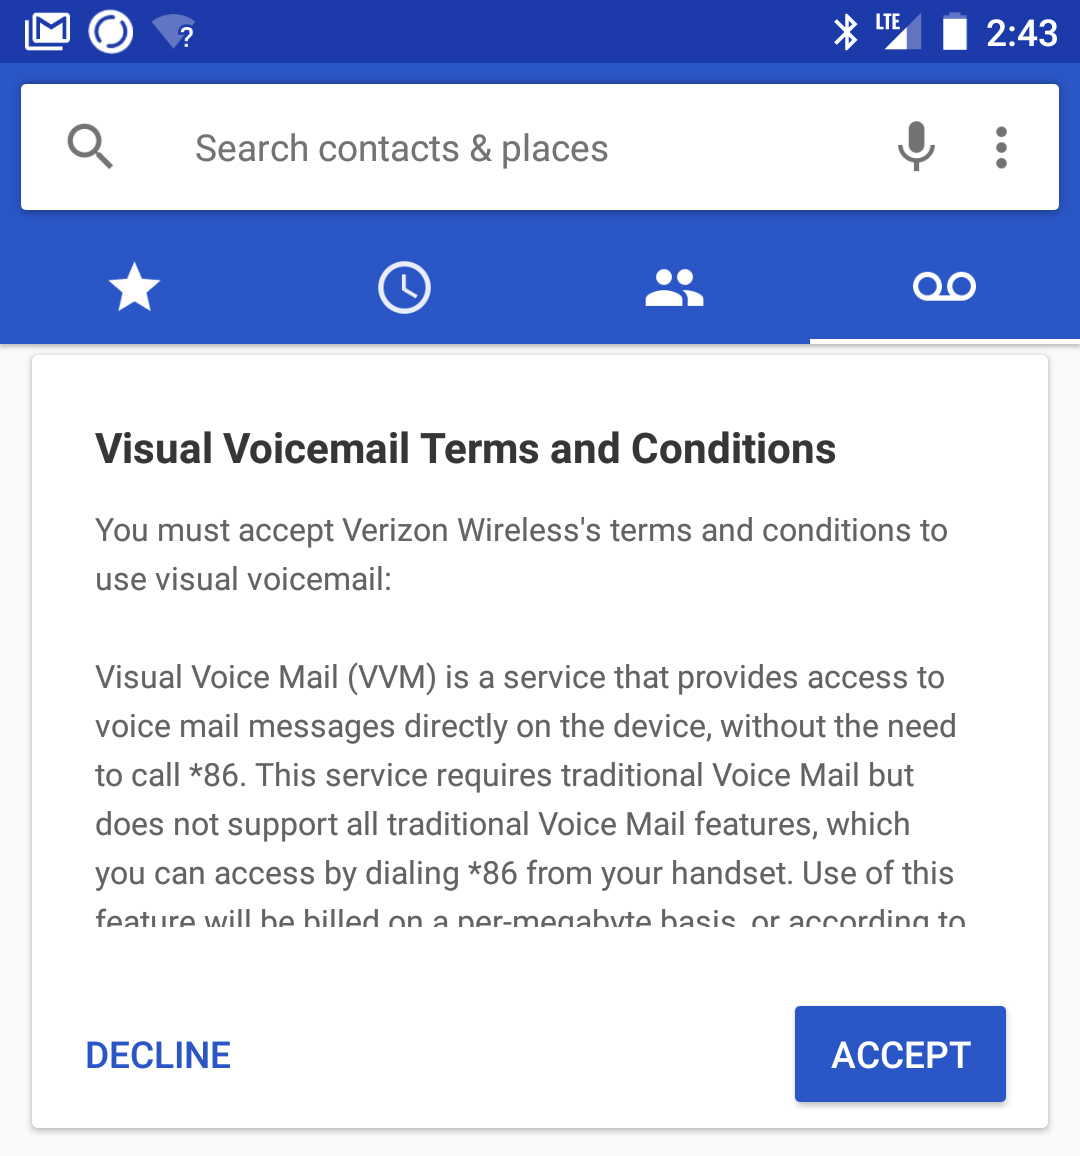 verizon wireless visual voicemail